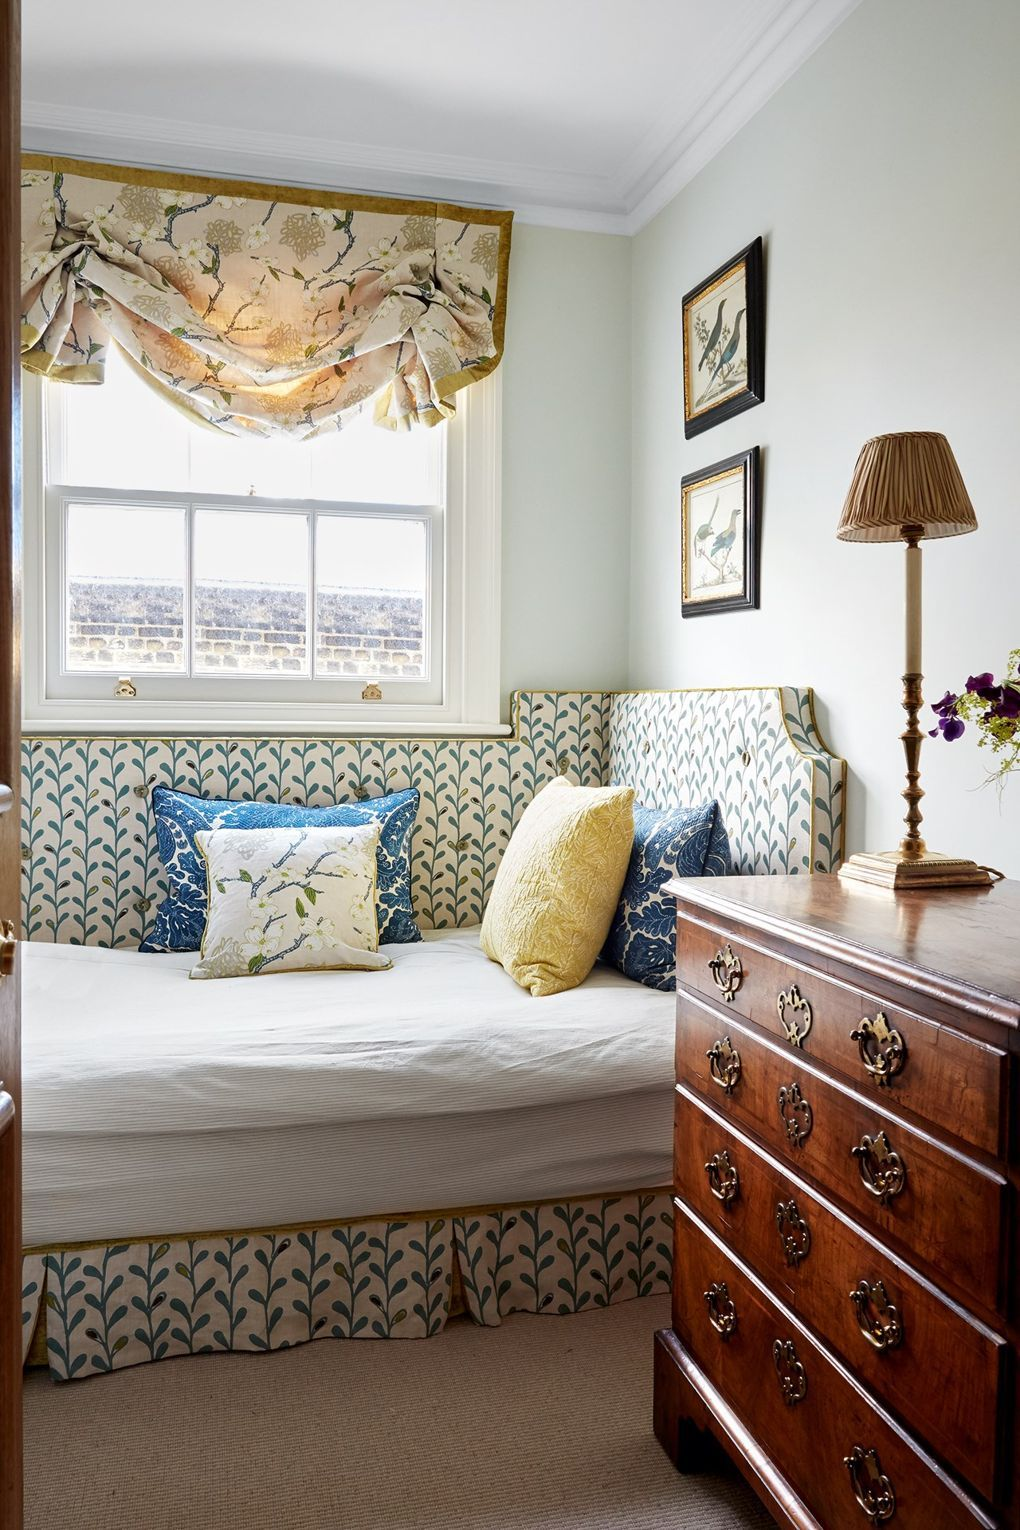 A charming home rich with inherited & collected antiques